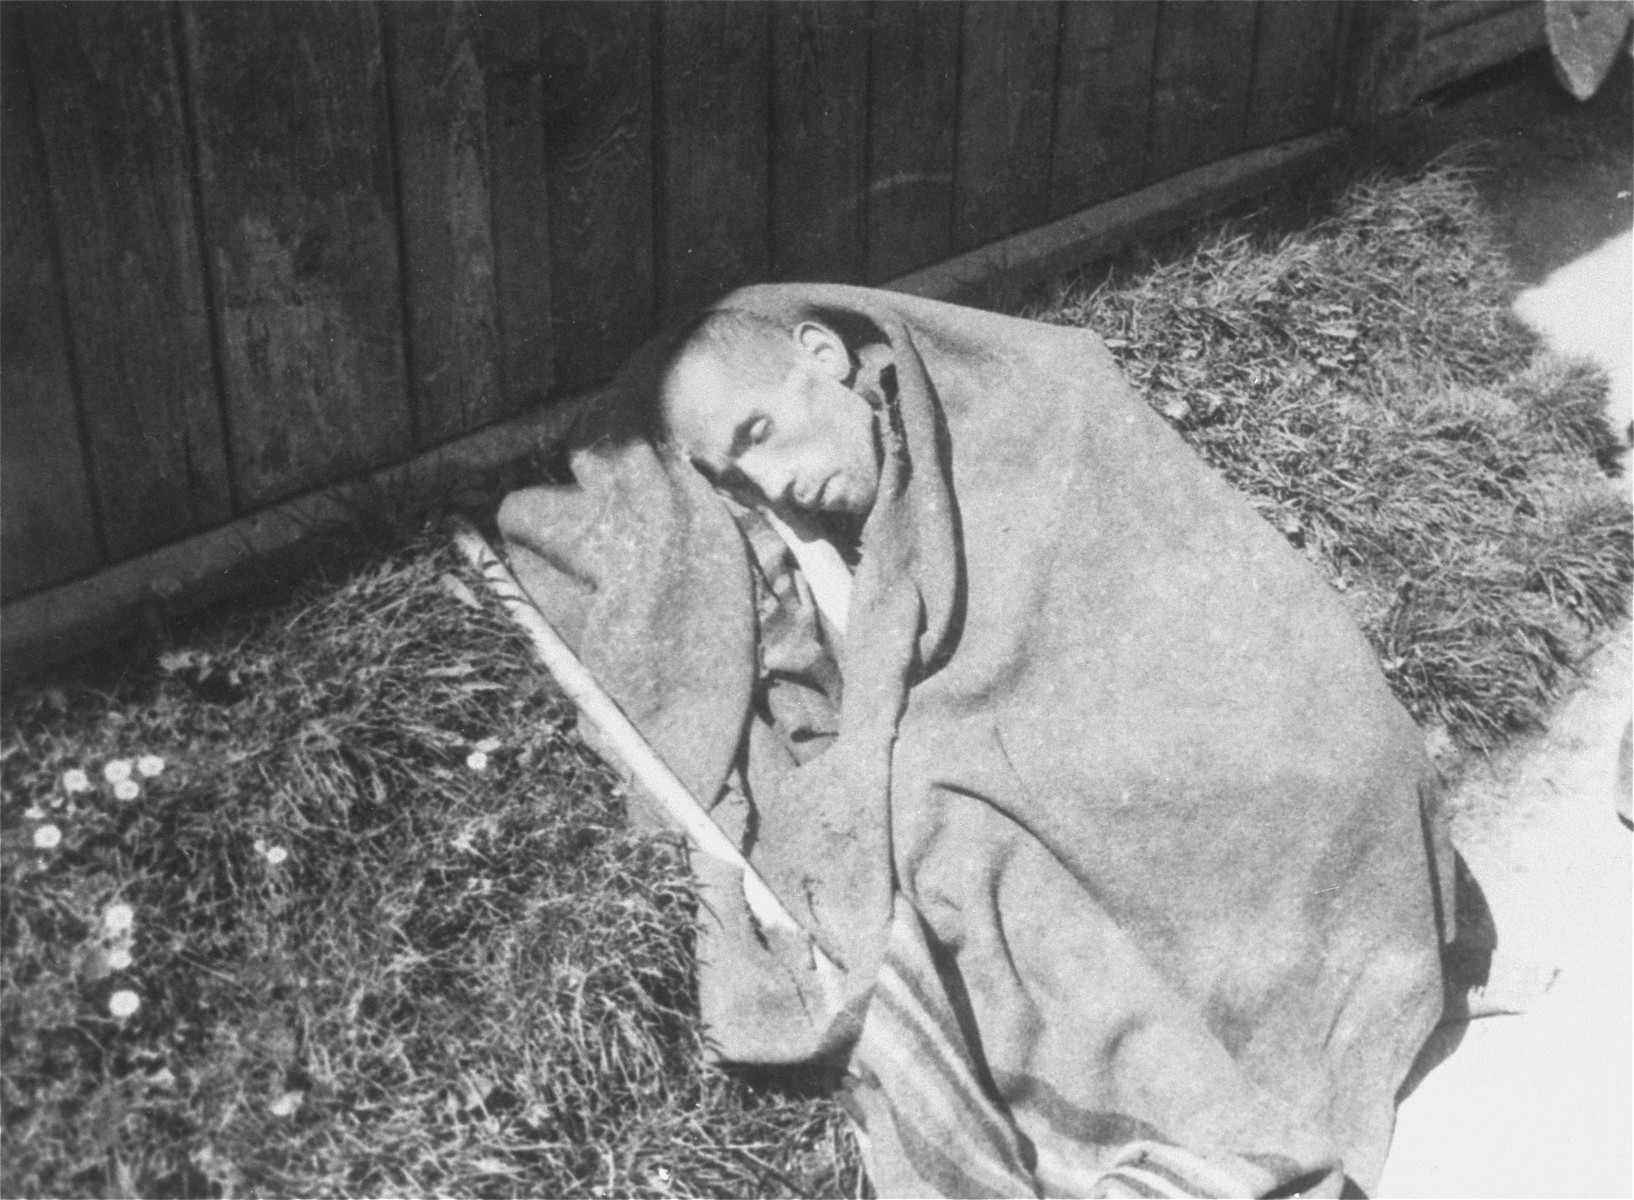 A survivor who is wrapped in a blanket lies outside a barracks in the newly liberated Ebensee concentration camp.